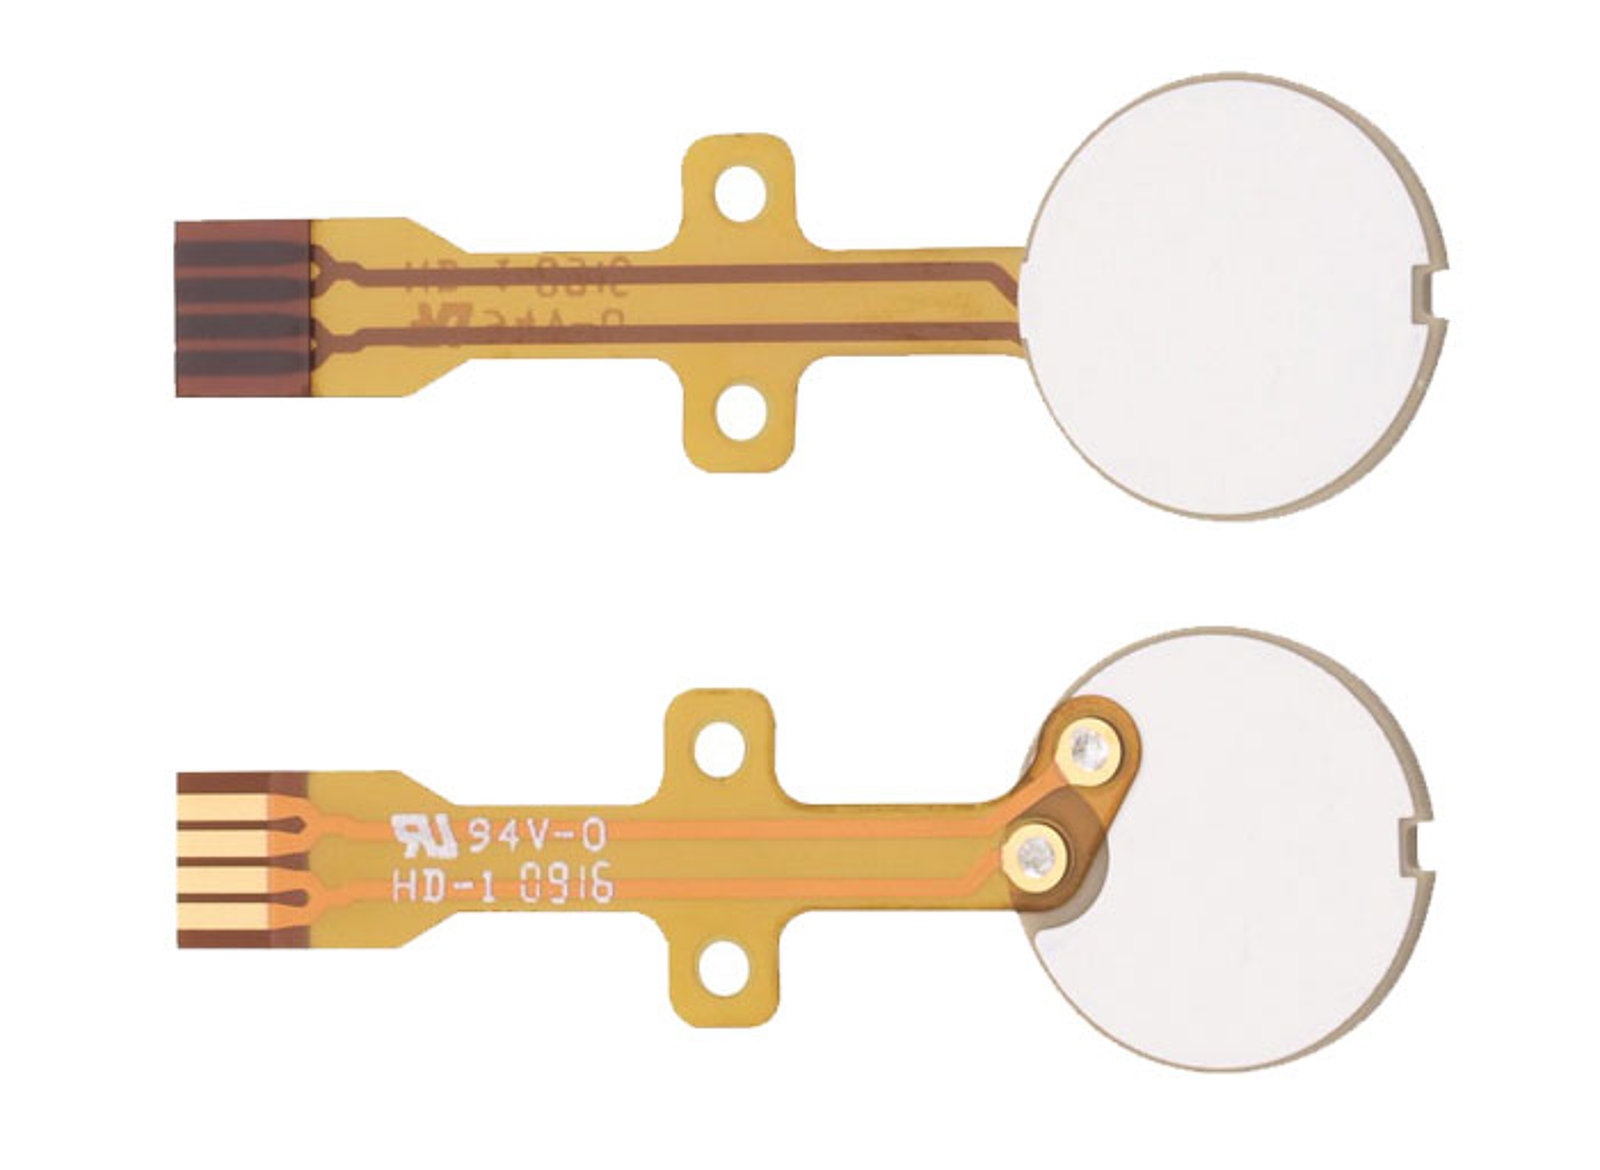 Piezo Transducers Actuators And Motor Drive Solutions For Medical Basic Circuit Board Diagram Prototypes Electromagnetic Pistol Transducer Discs Are Available With Flexible Pcb To Facilitate Integration In Volume Production Image Pi